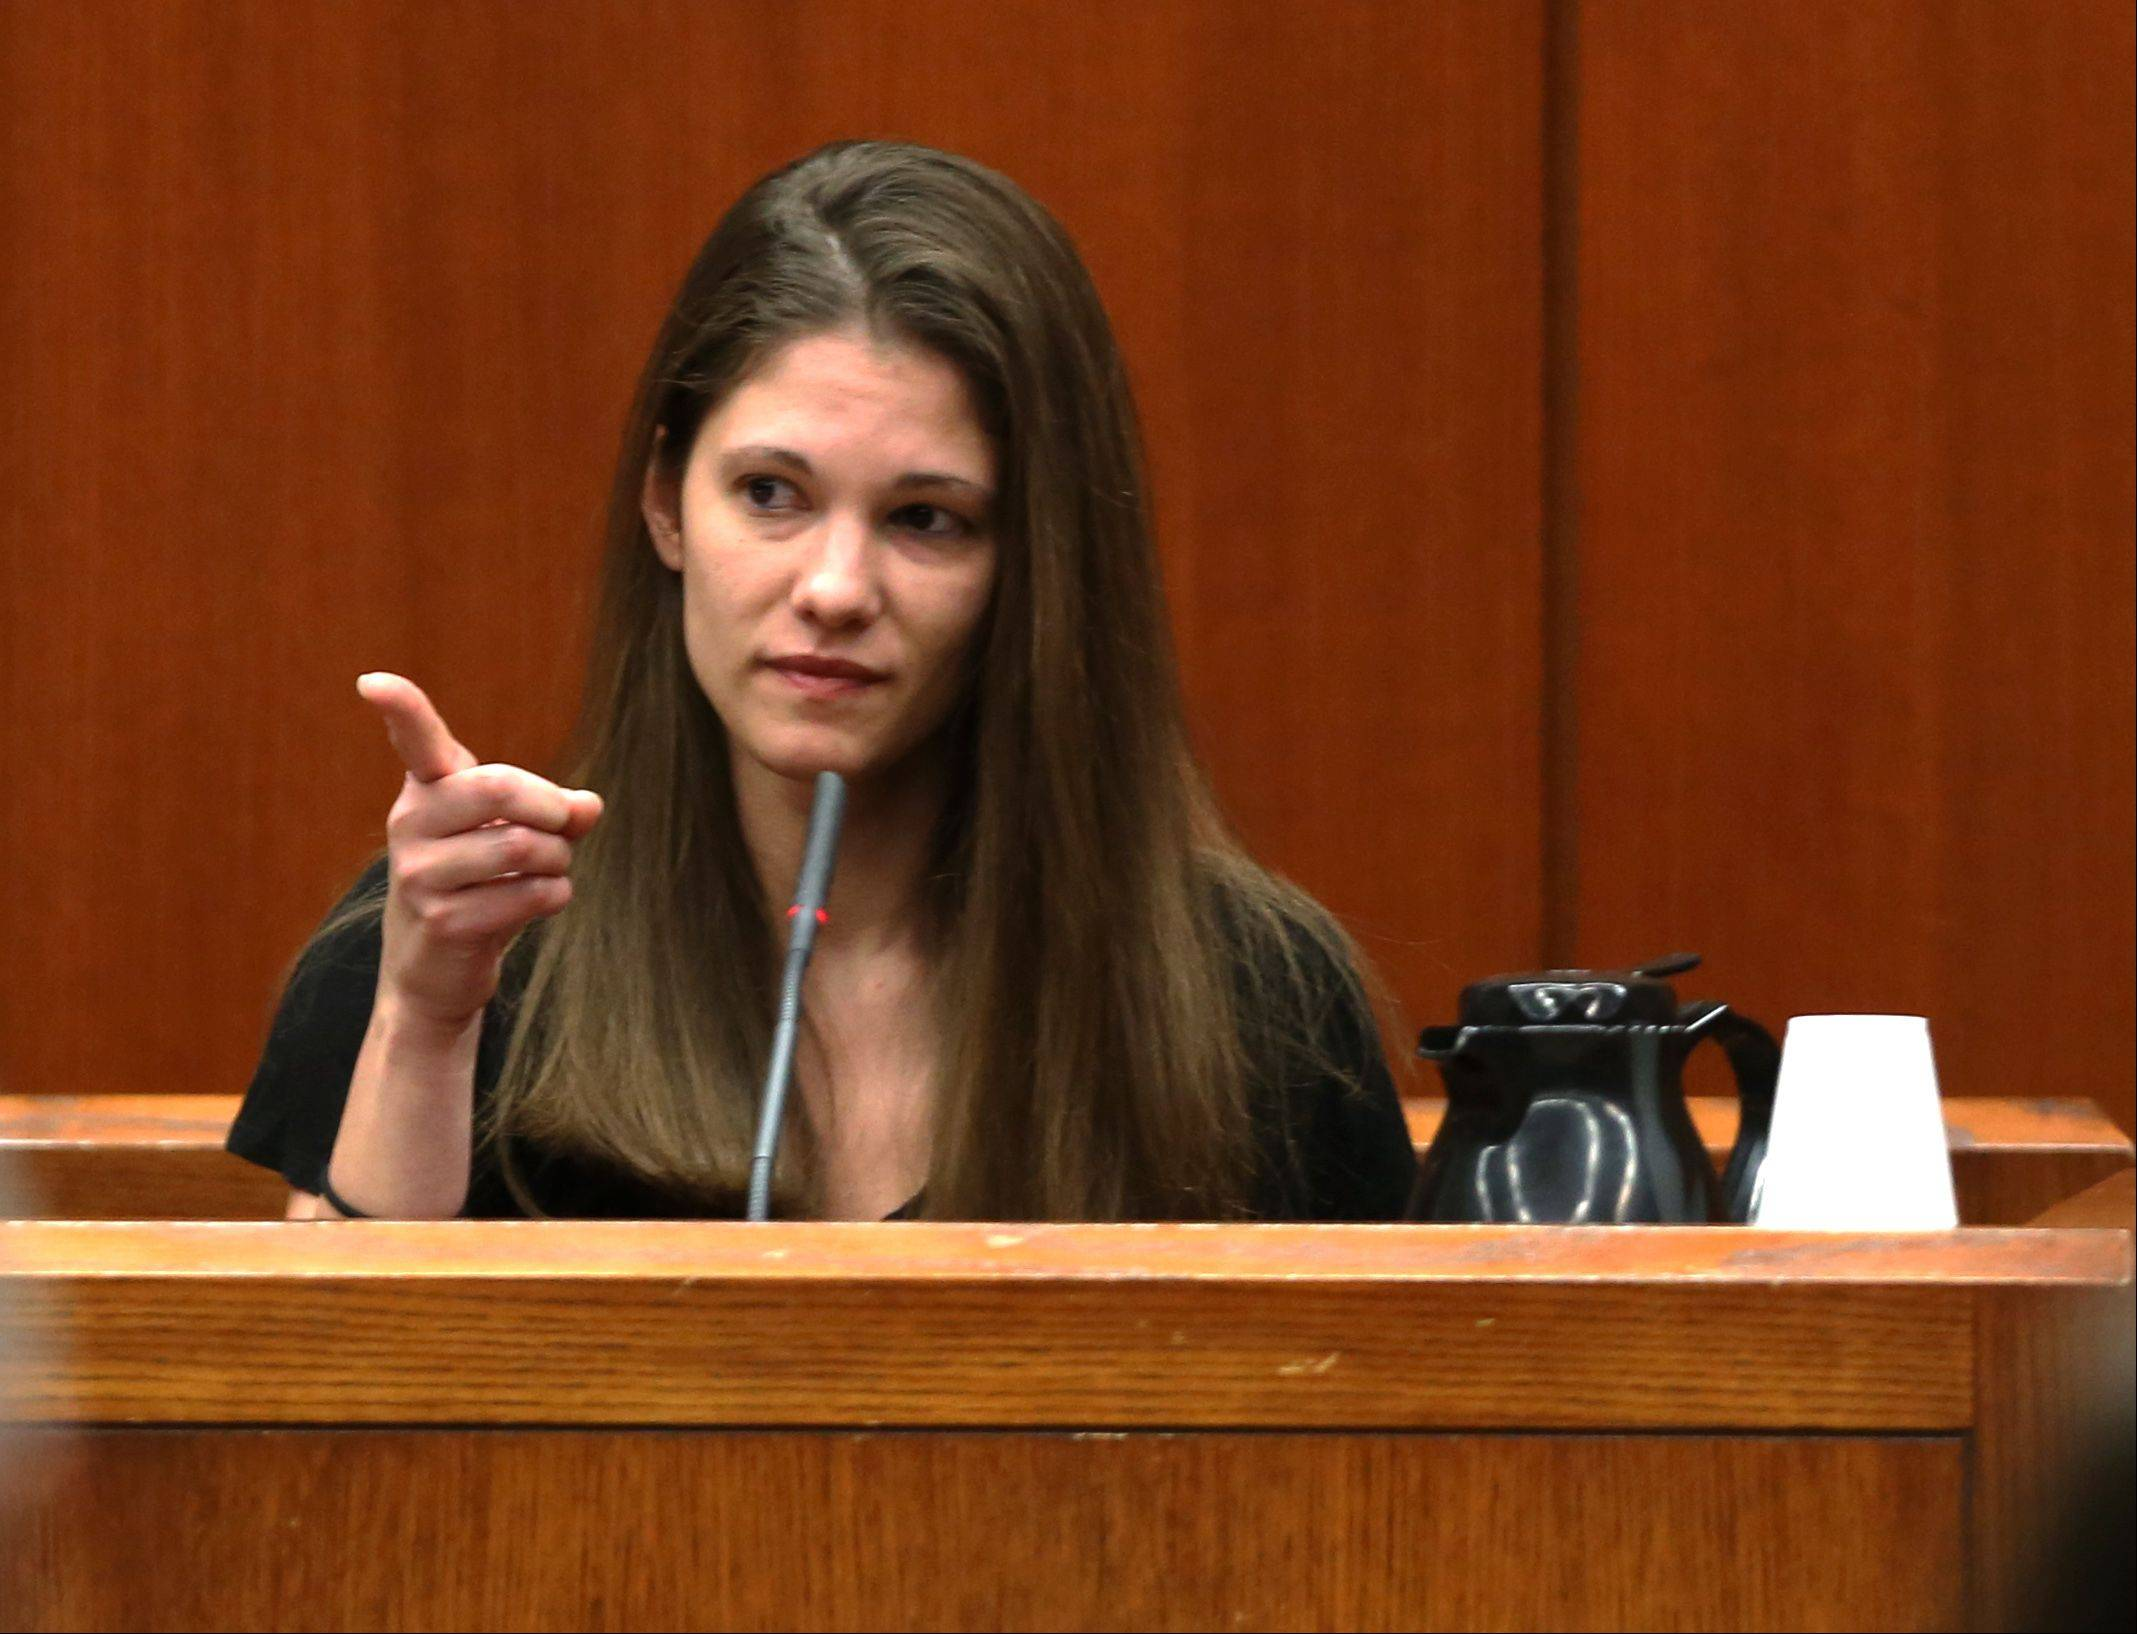 Robin Heinzelman, a former girlfriend of Johnny Borizov, points out Borizov before testifying Thursday at Borizov's triple-murder trial at the DuPage County courthouse in Wheaton.